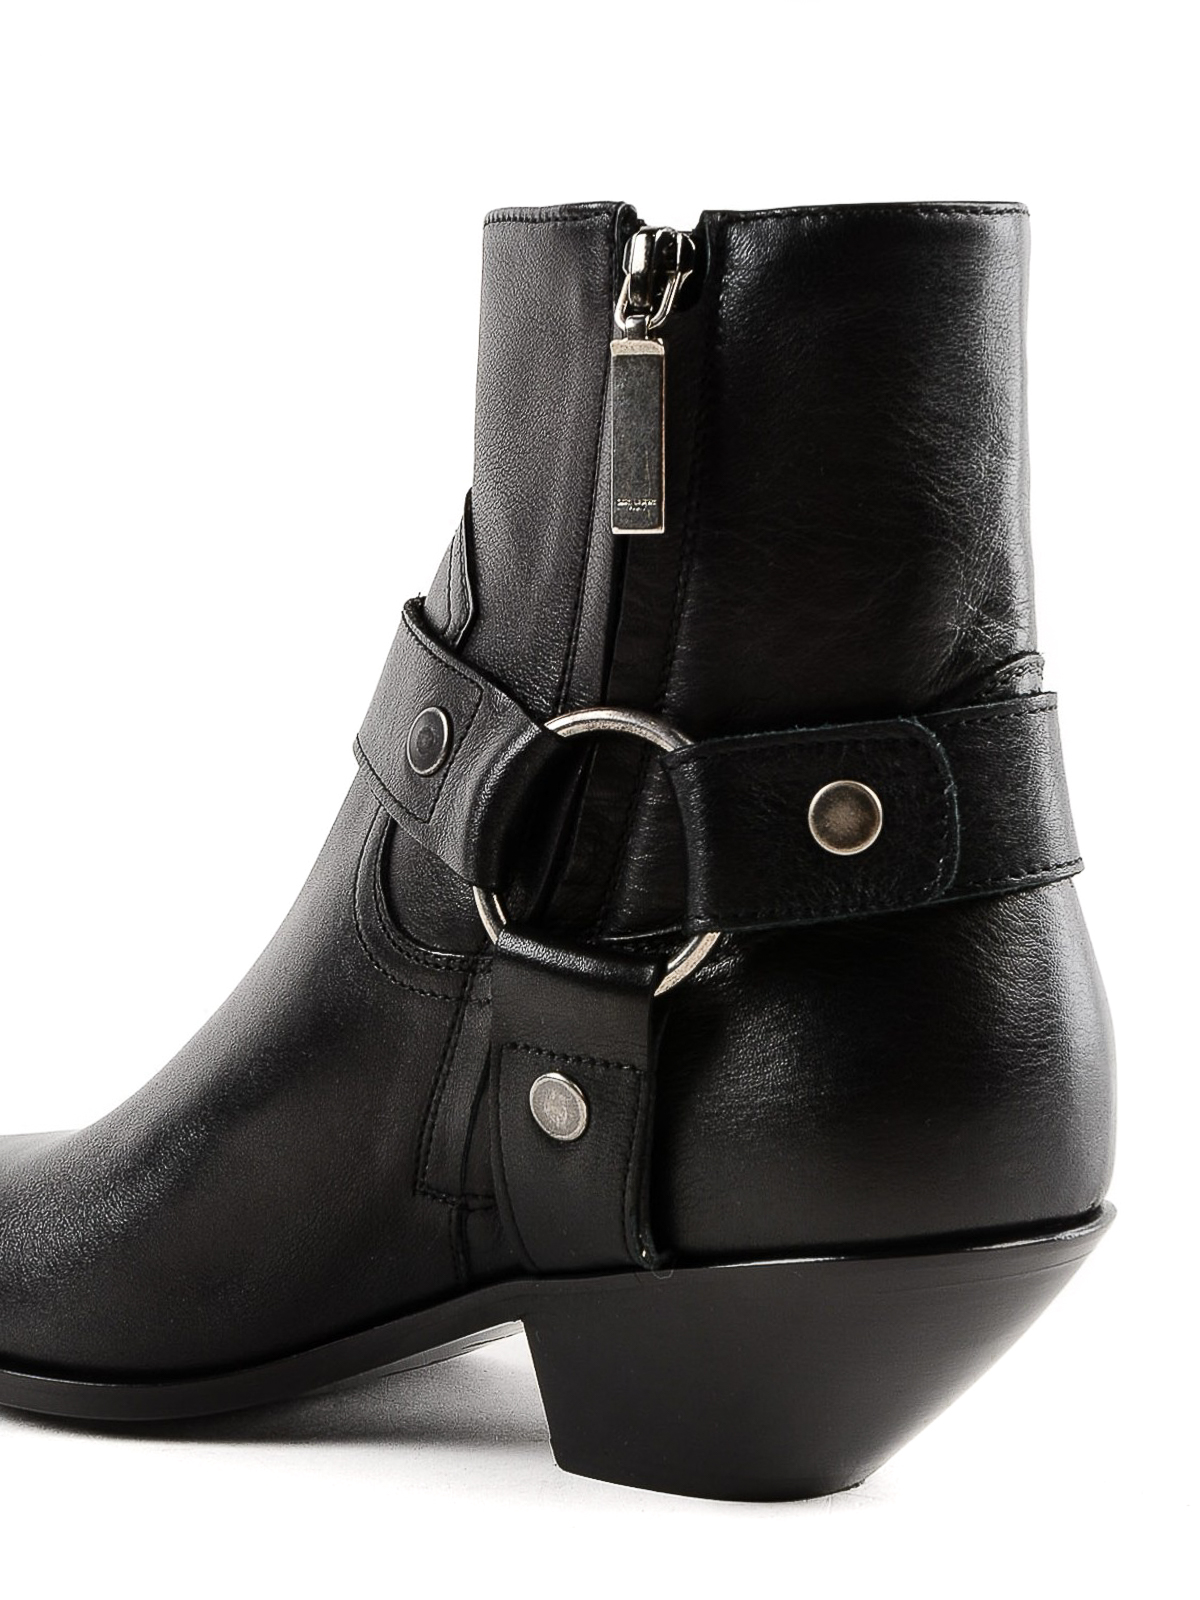 leather ankle boots - ankle boots